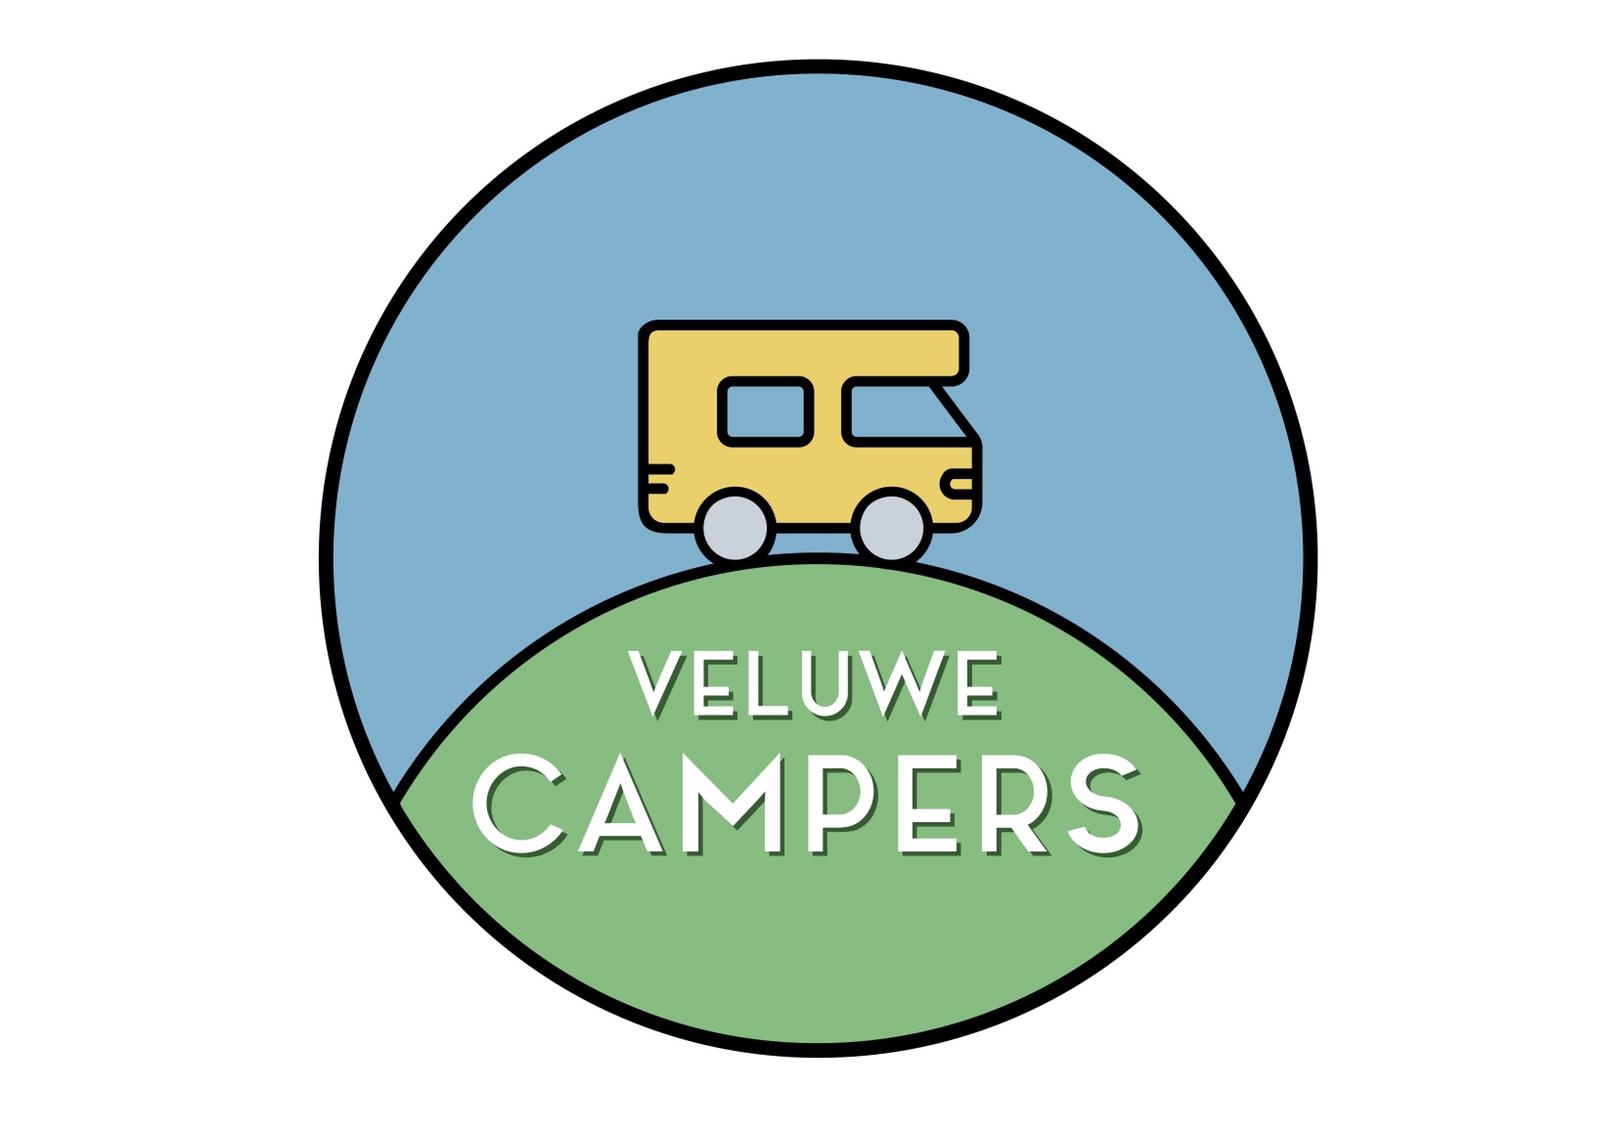 Veluwe campers